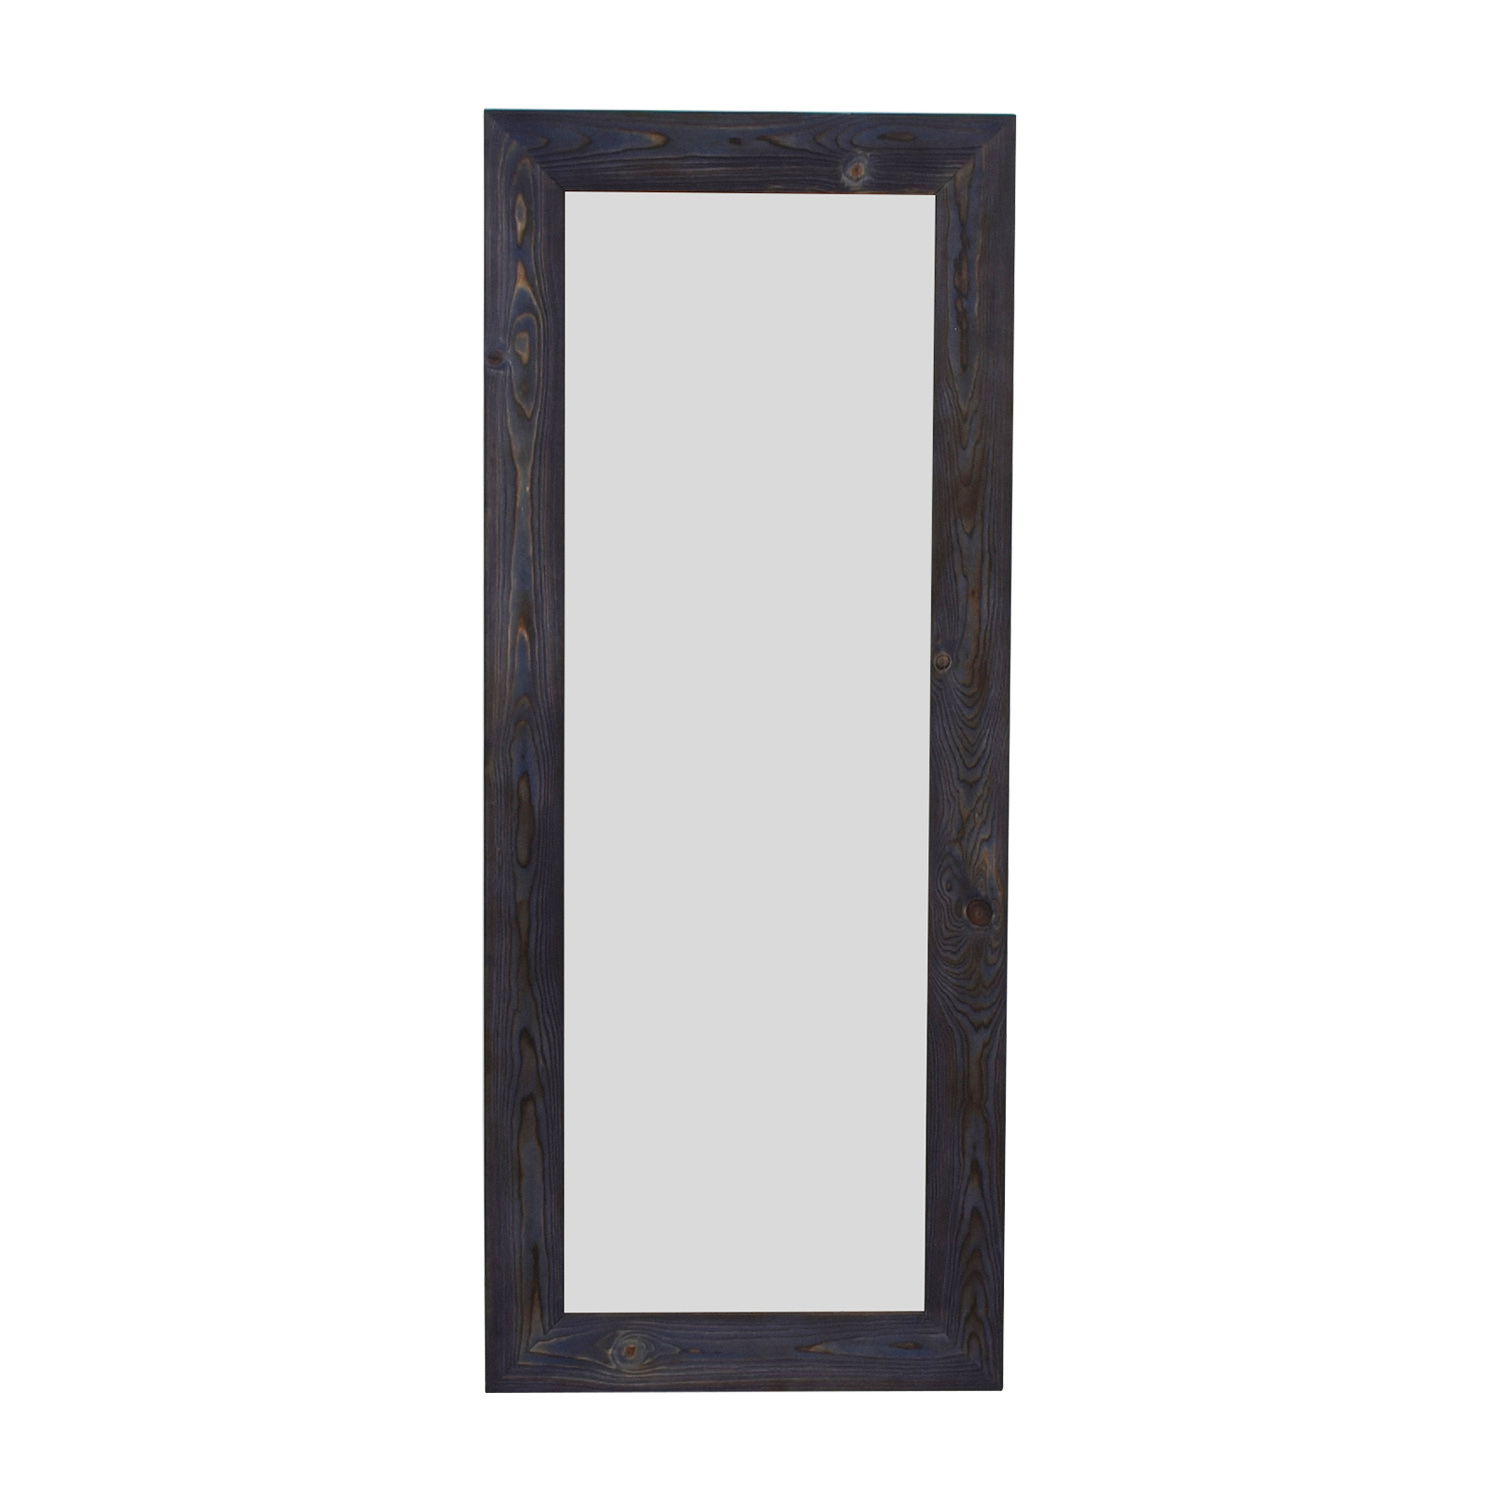 Muller Designs Reclaimed Wood Full-Length Mirror / Decor